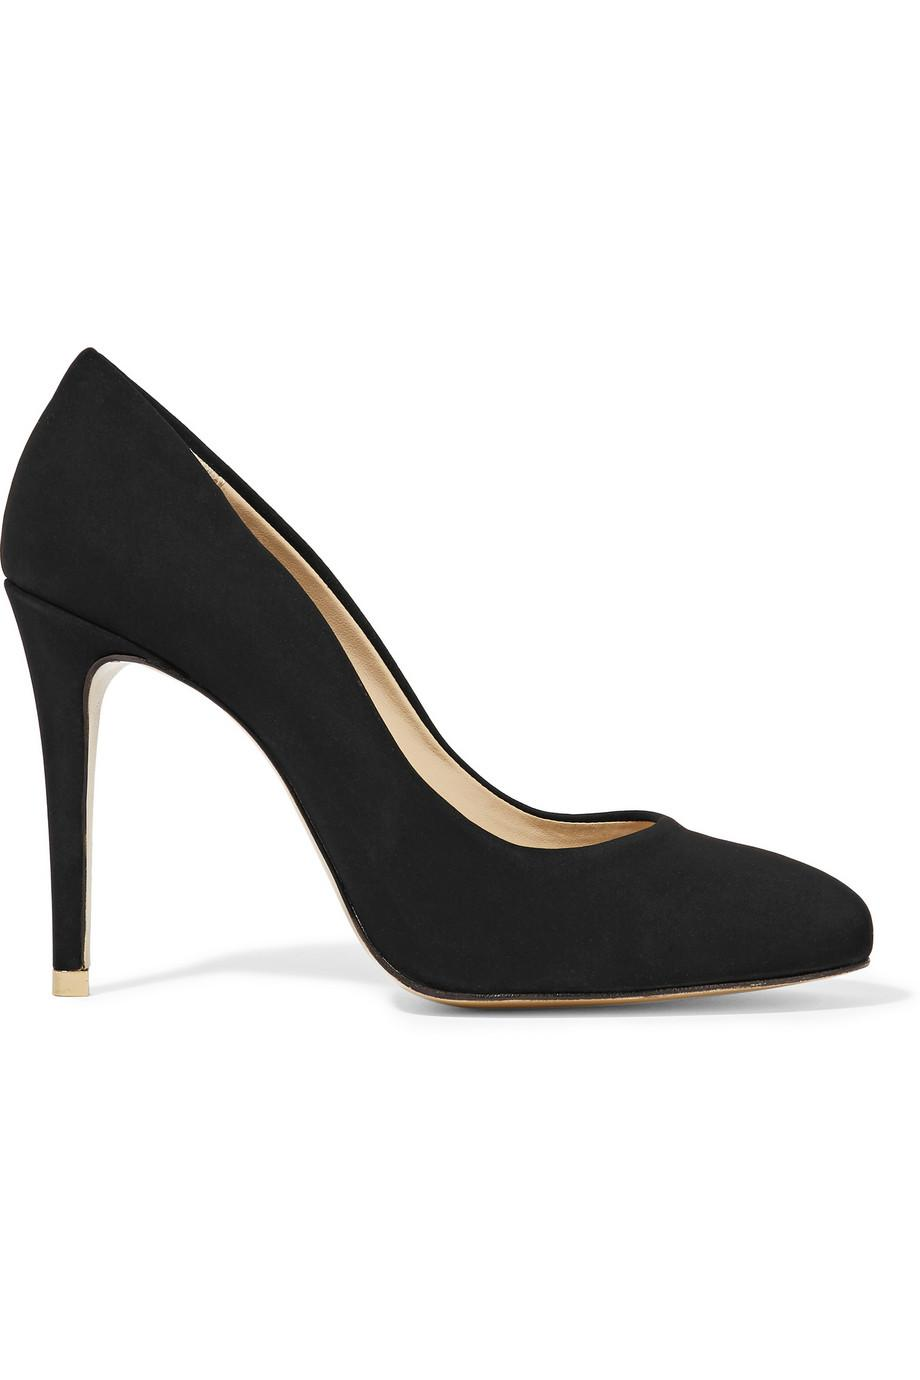 55-Stella-McCartney-women-s-faux-suede-pumps-1.jpg